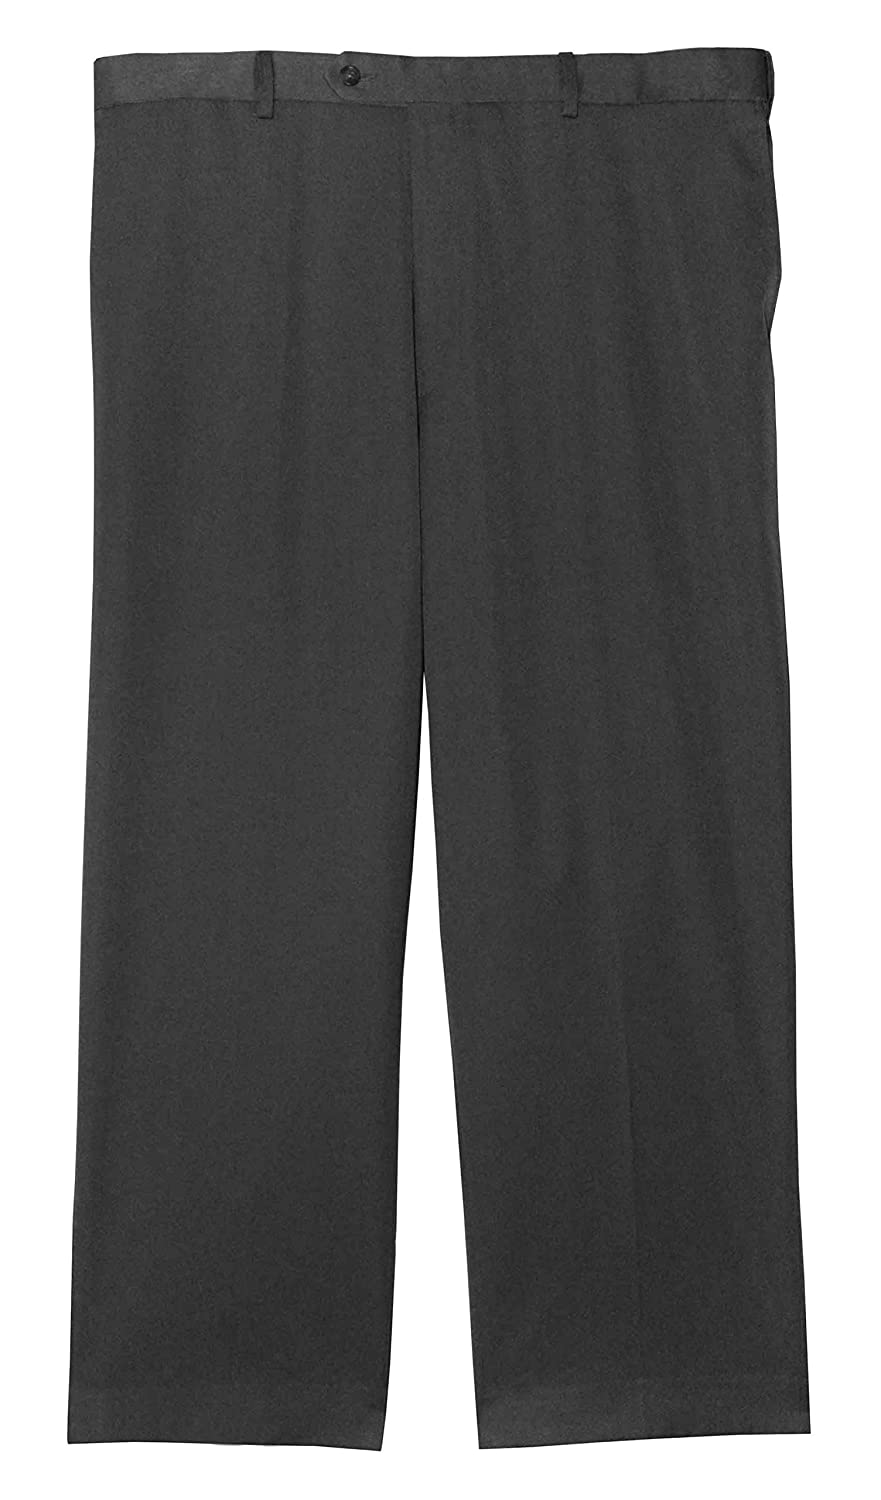 Jonathan Quale Big and Tall Flat Front Dress Pant Grey